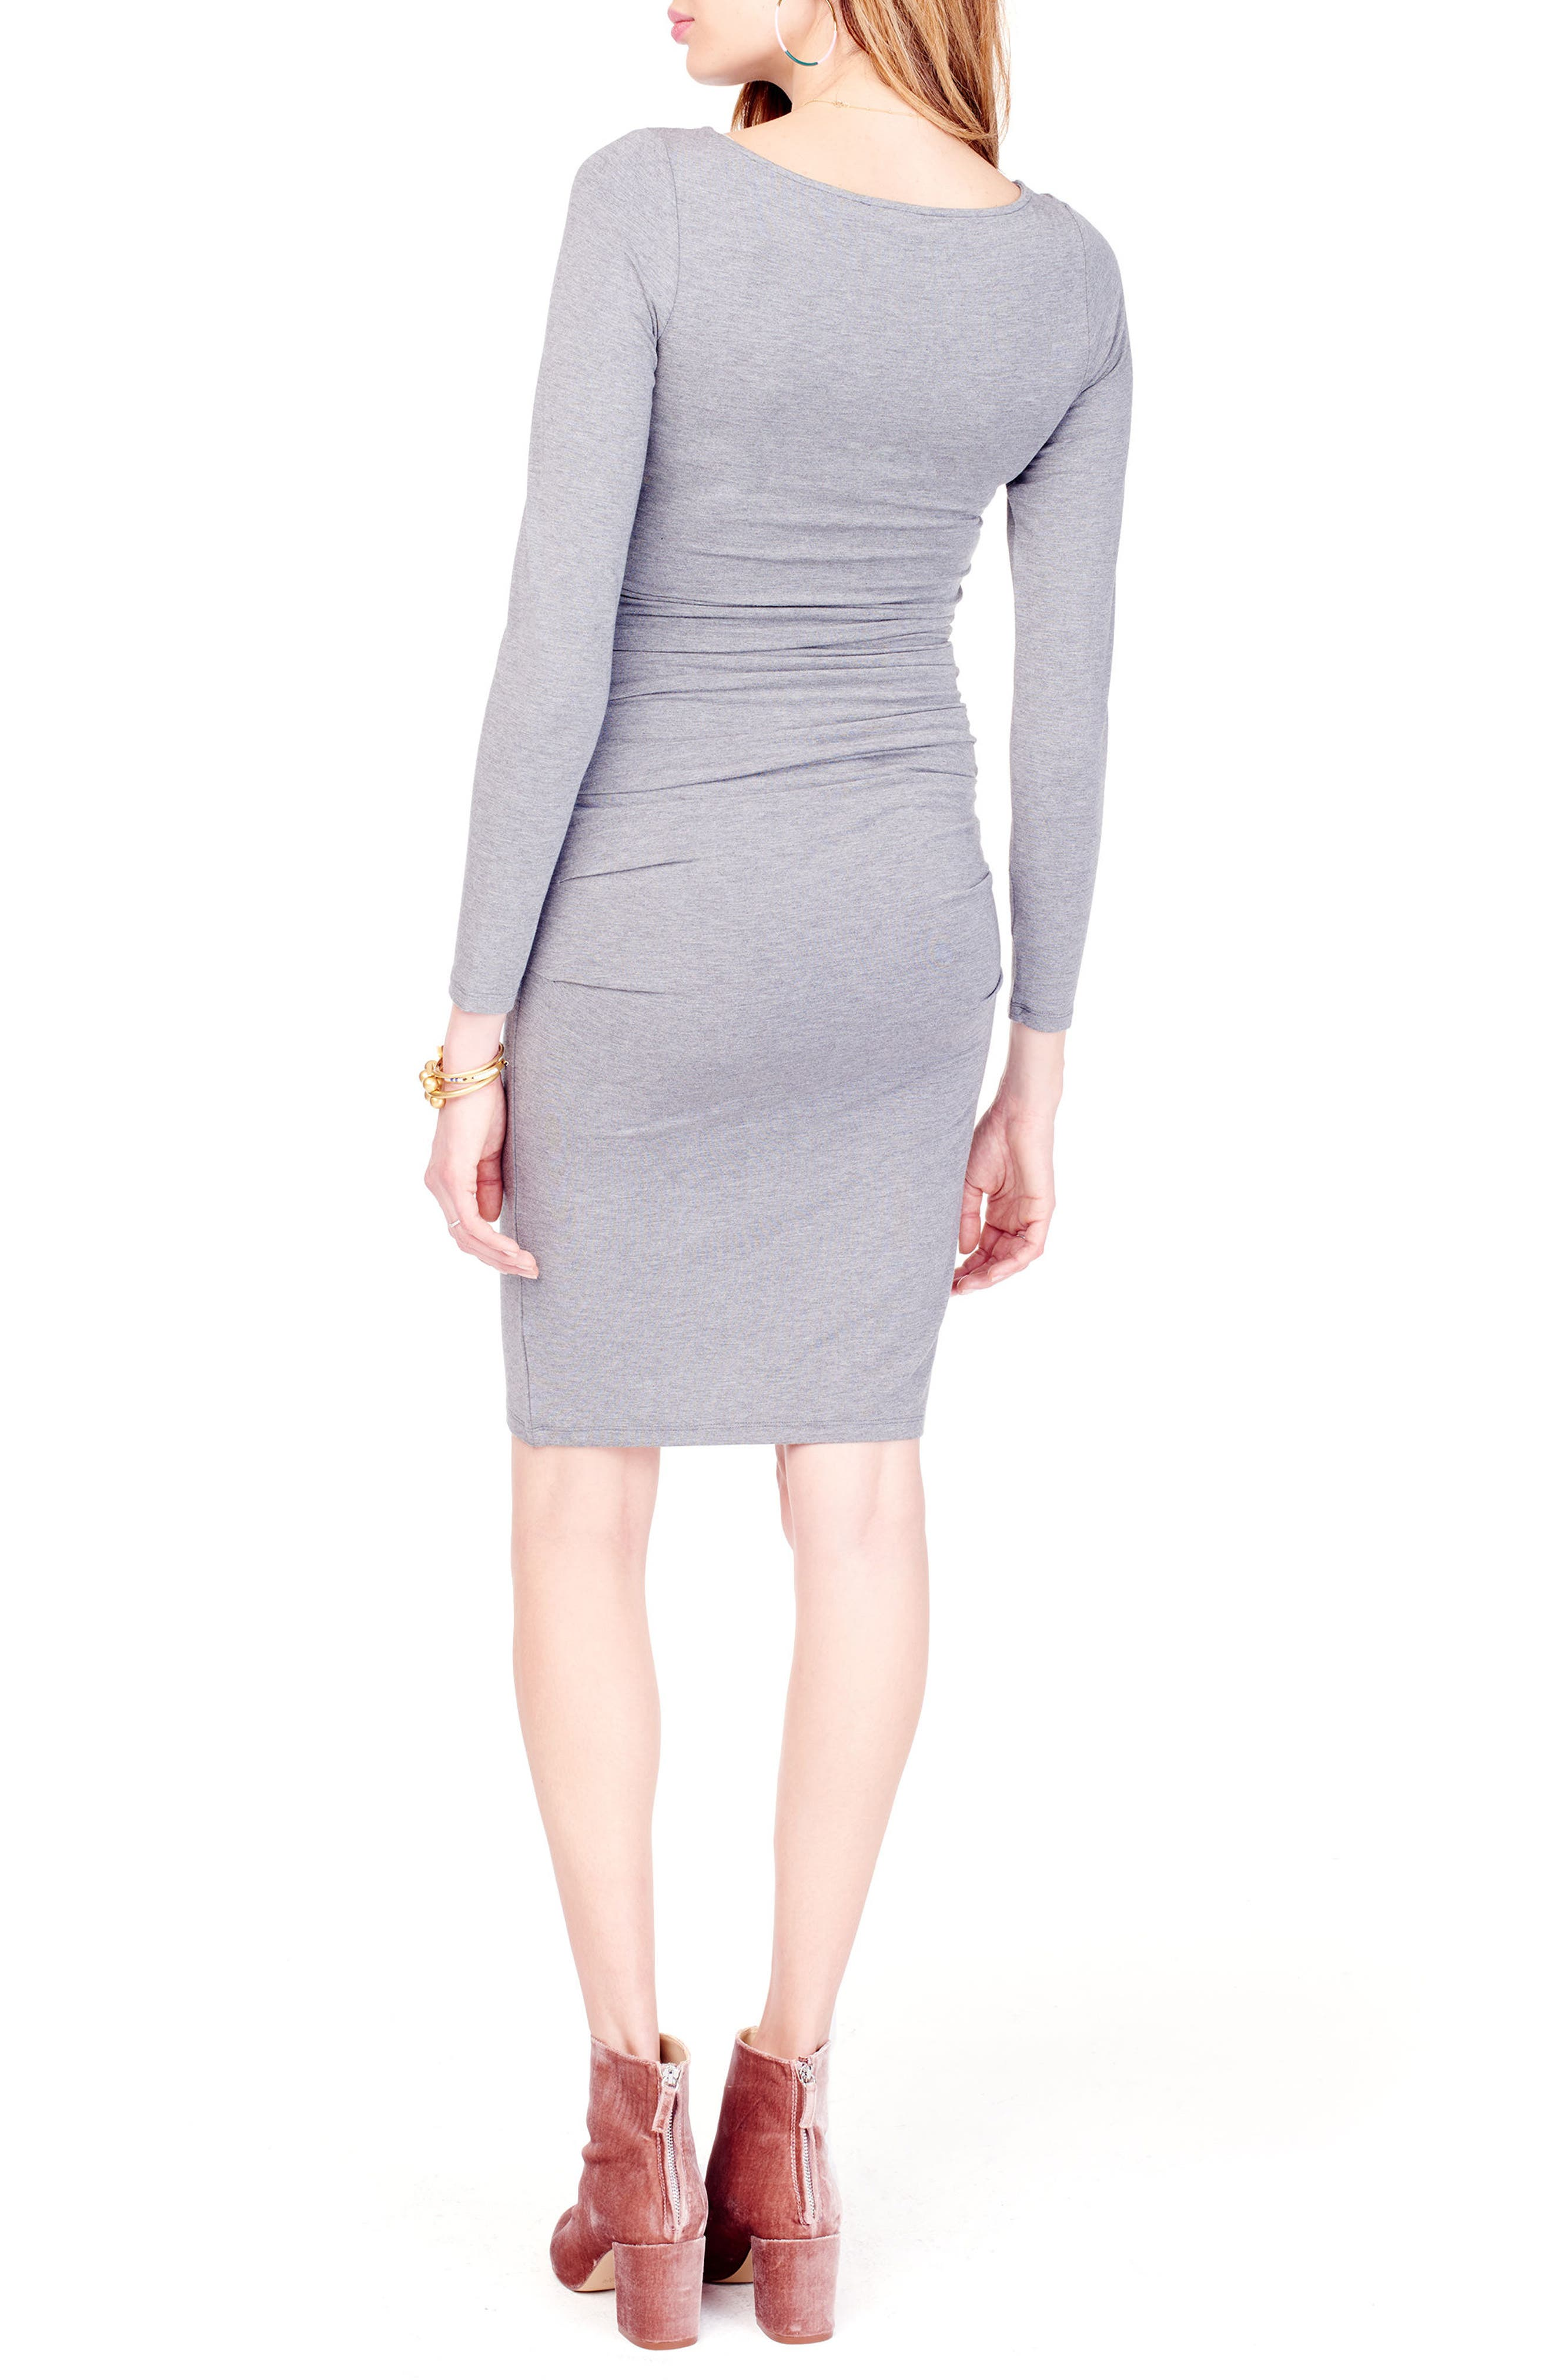 Shirred Maternity Dress,                             Alternate thumbnail 2, color,                             HEATHER GREY